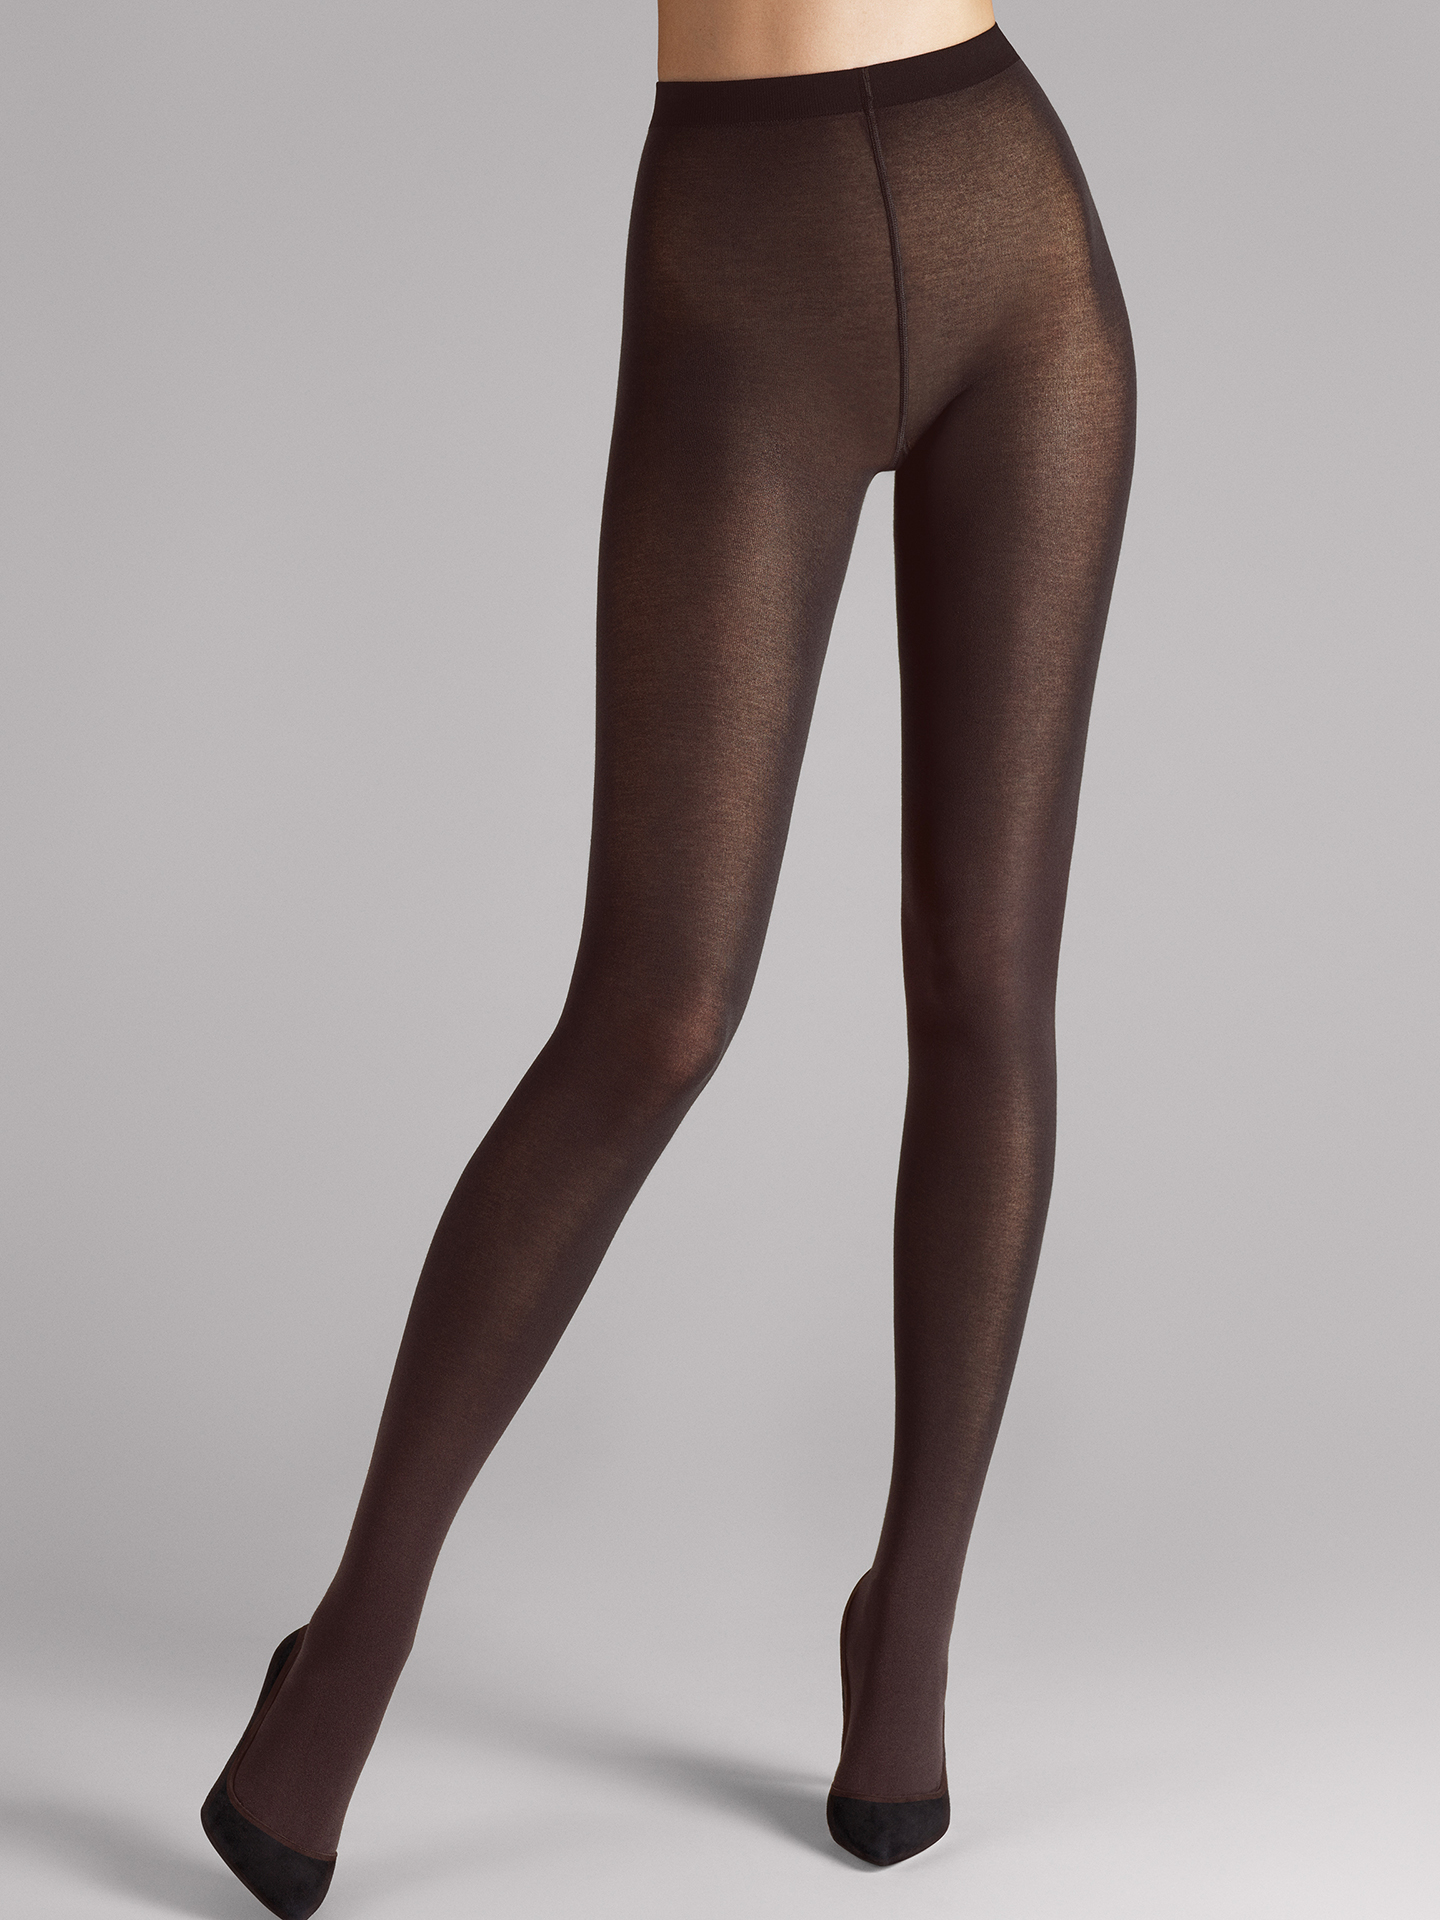 Wolford Apparel & Accessories > Clothing > Collant Cotton Velvet - 4250 - XS